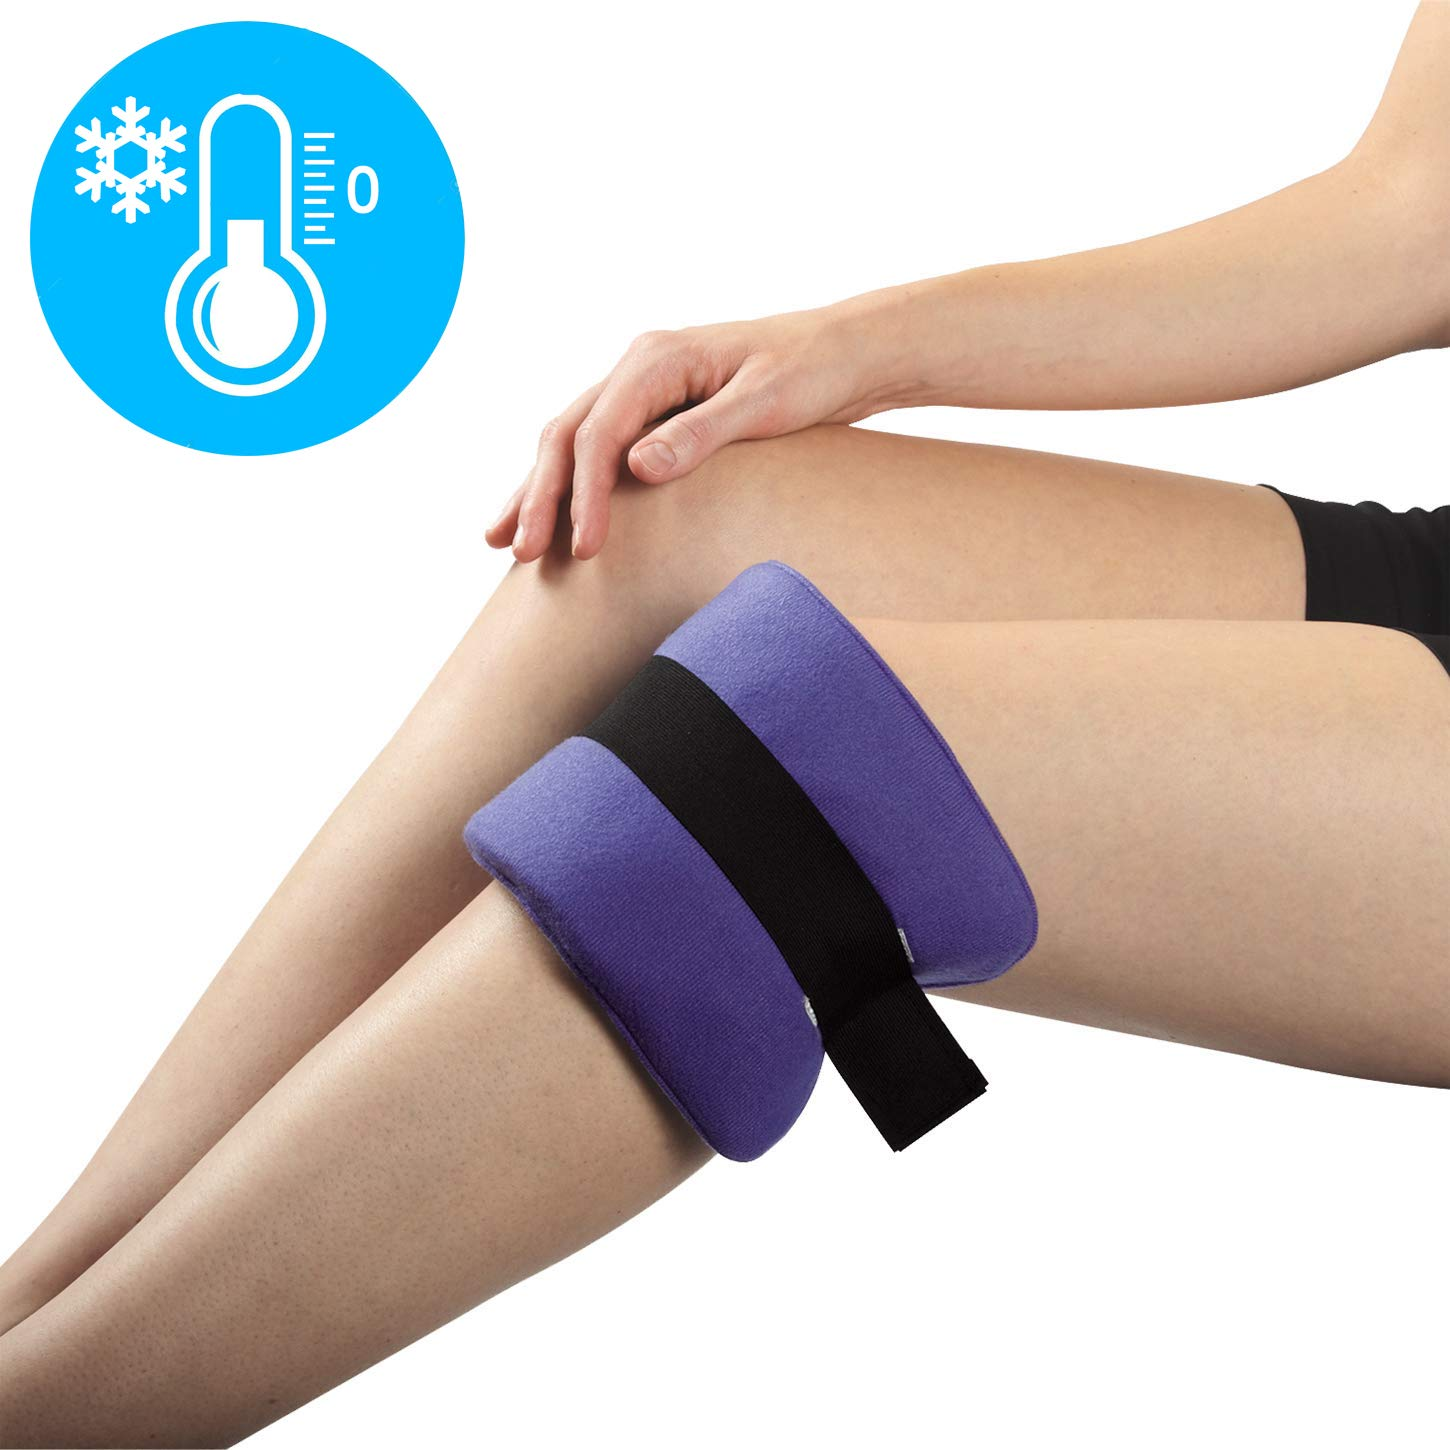 Thermipaq ICY Cold Pain Relief Wrap - Large 8x14 Thermal Clay Knee Ice Pack Wrap for Knee Pain Relief - Long Lasting - Adjustable Strap for Shoulders, Neck Pain Relief, Back Pain Relief, Elbow